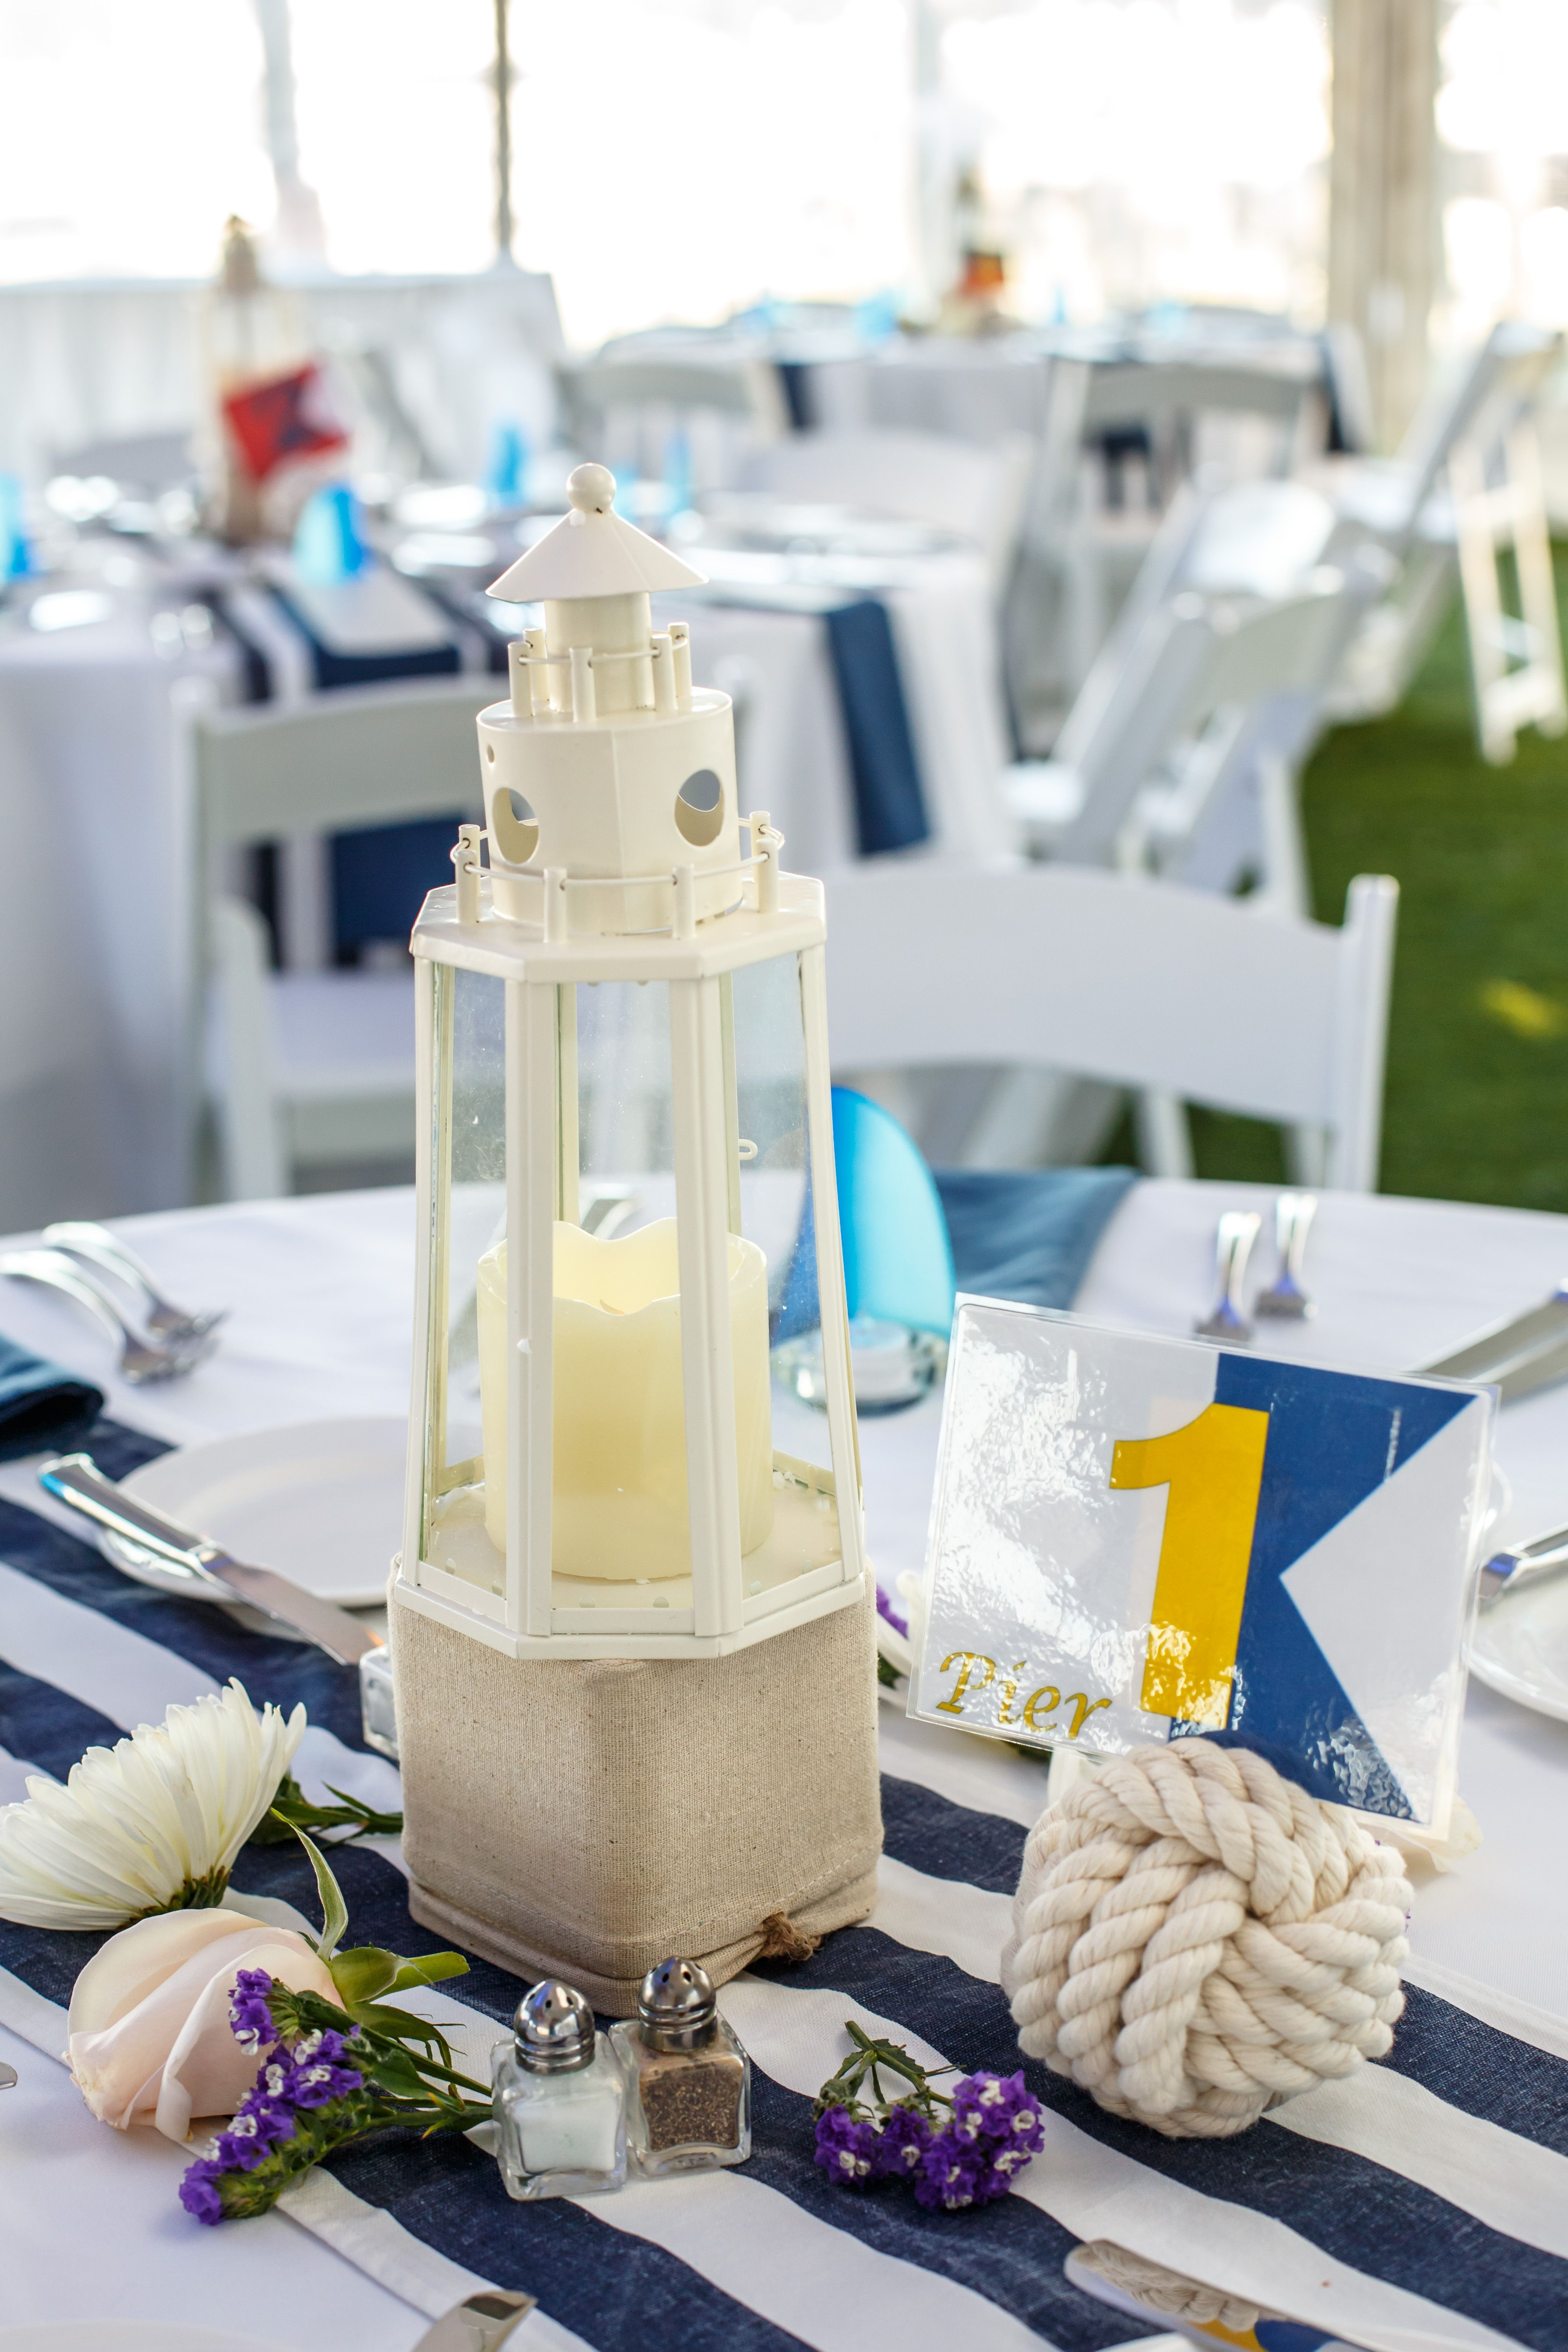 Captivating Nautical Centerpieces With Lighthouses And Monkeyu0027s Fist Rope Table Numbers